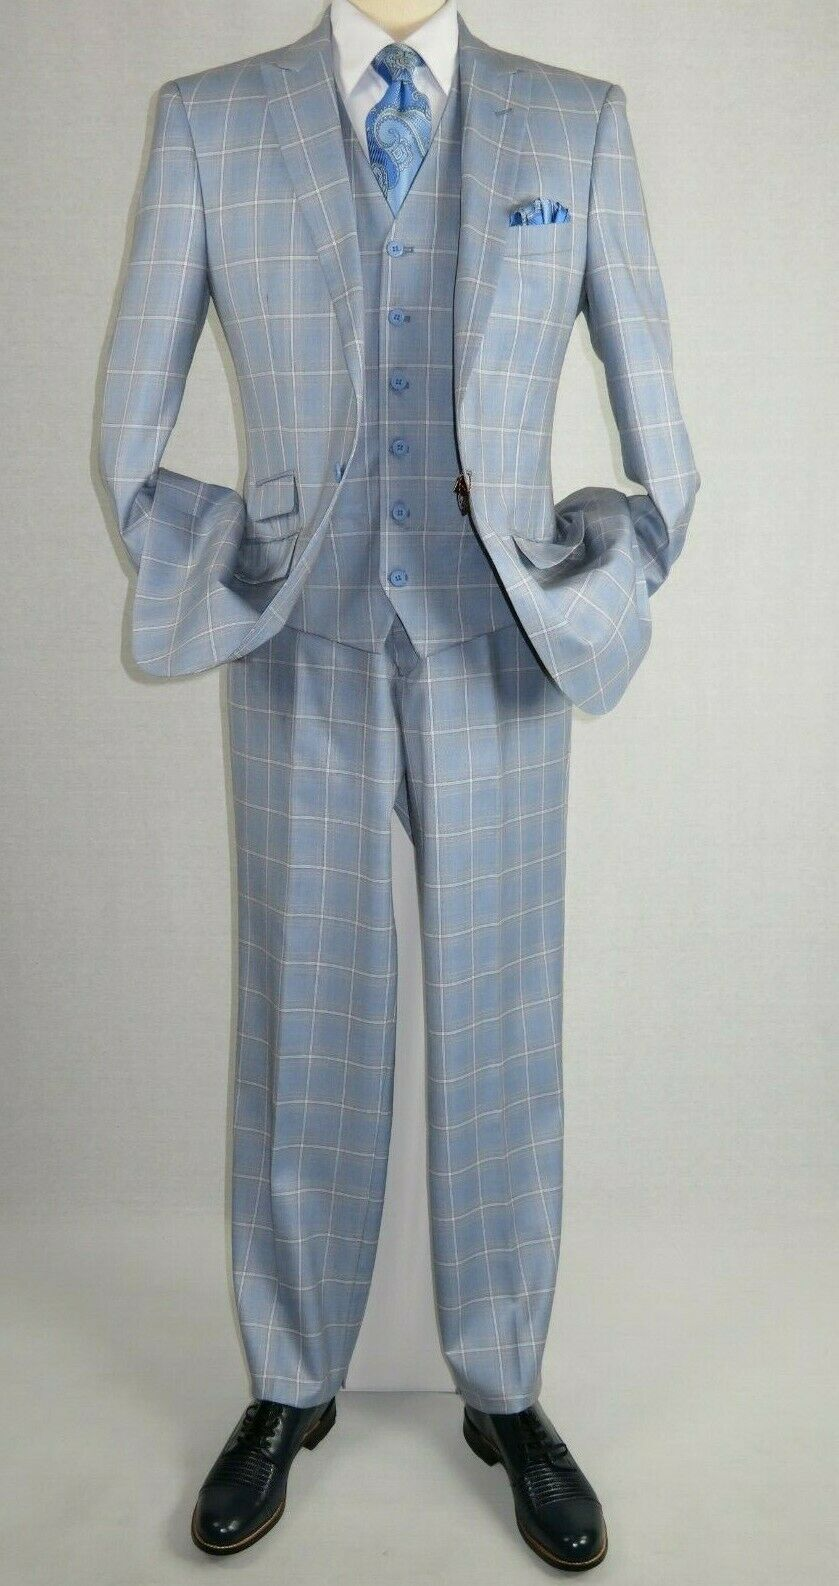 Men Suit Vitali Three Piece Vested English Plaid Window Pane M7175 Sky bluee Tan